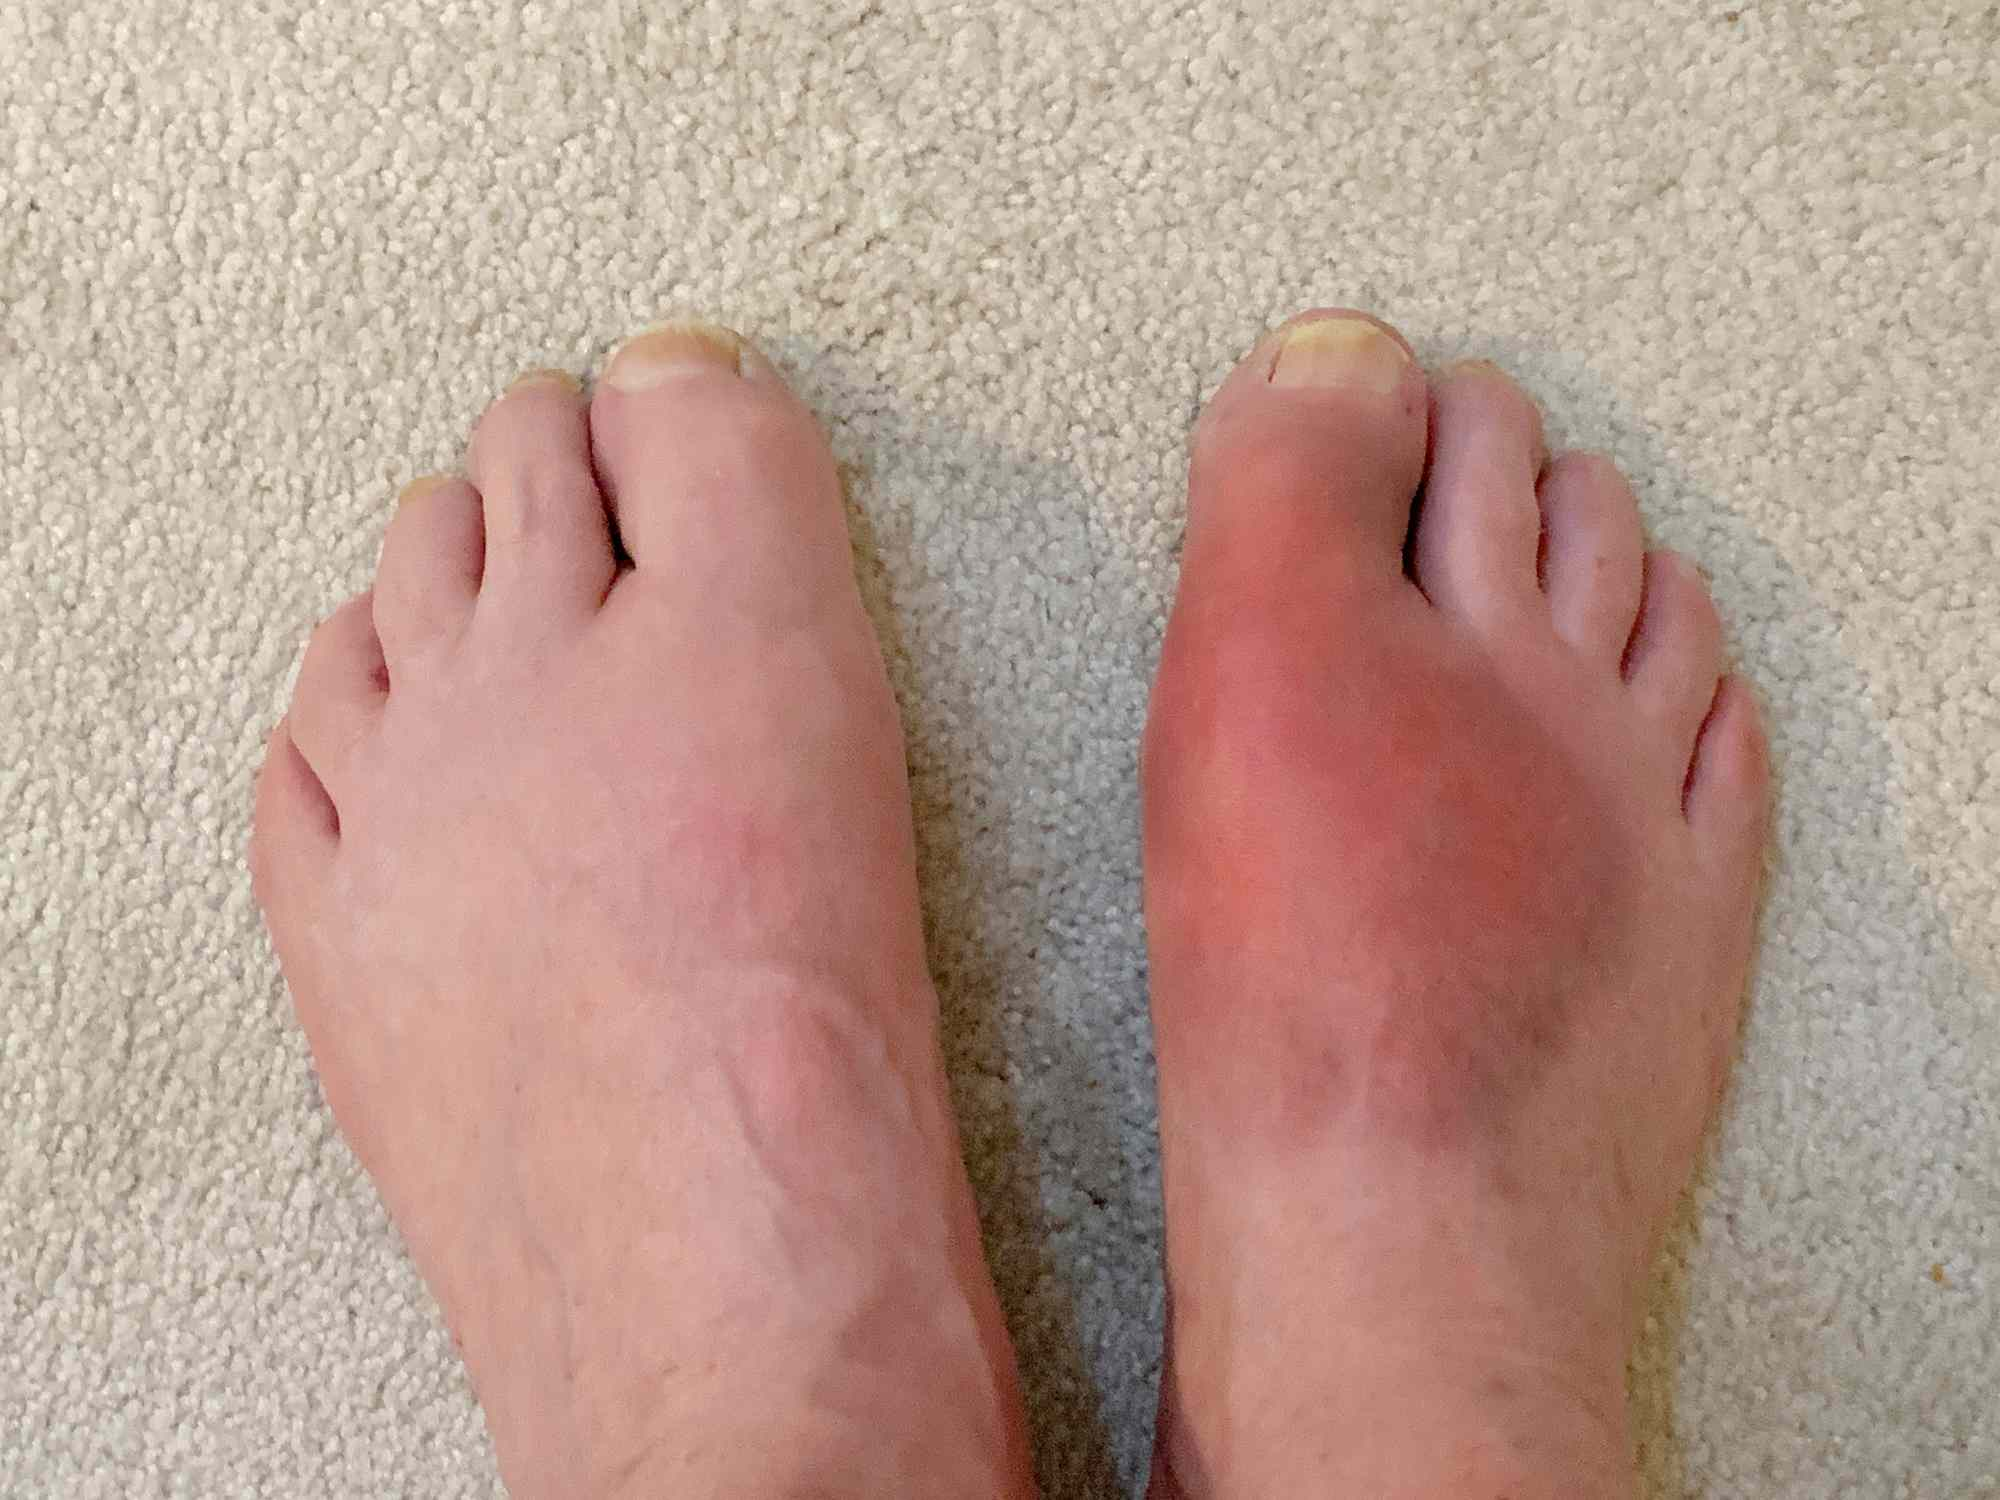 Gout in the big toe and foot